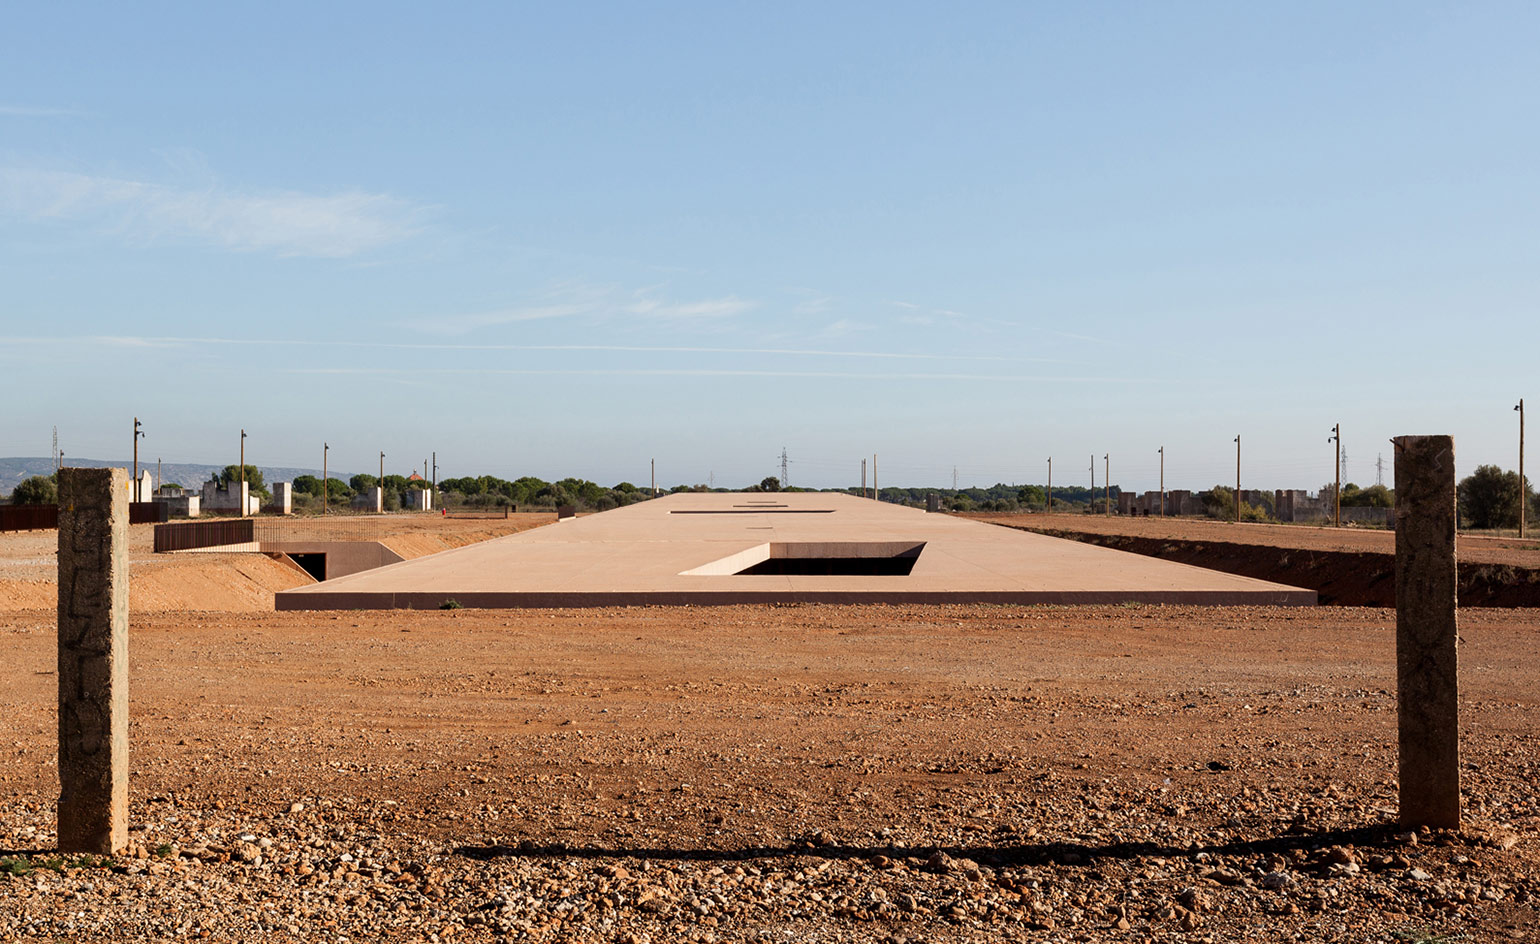 The finalists of the 2017 Mies van der Rohe Award includes Bandol-based Rudy Ricciotti, for his Rivesaltes Memorial Museum in France.